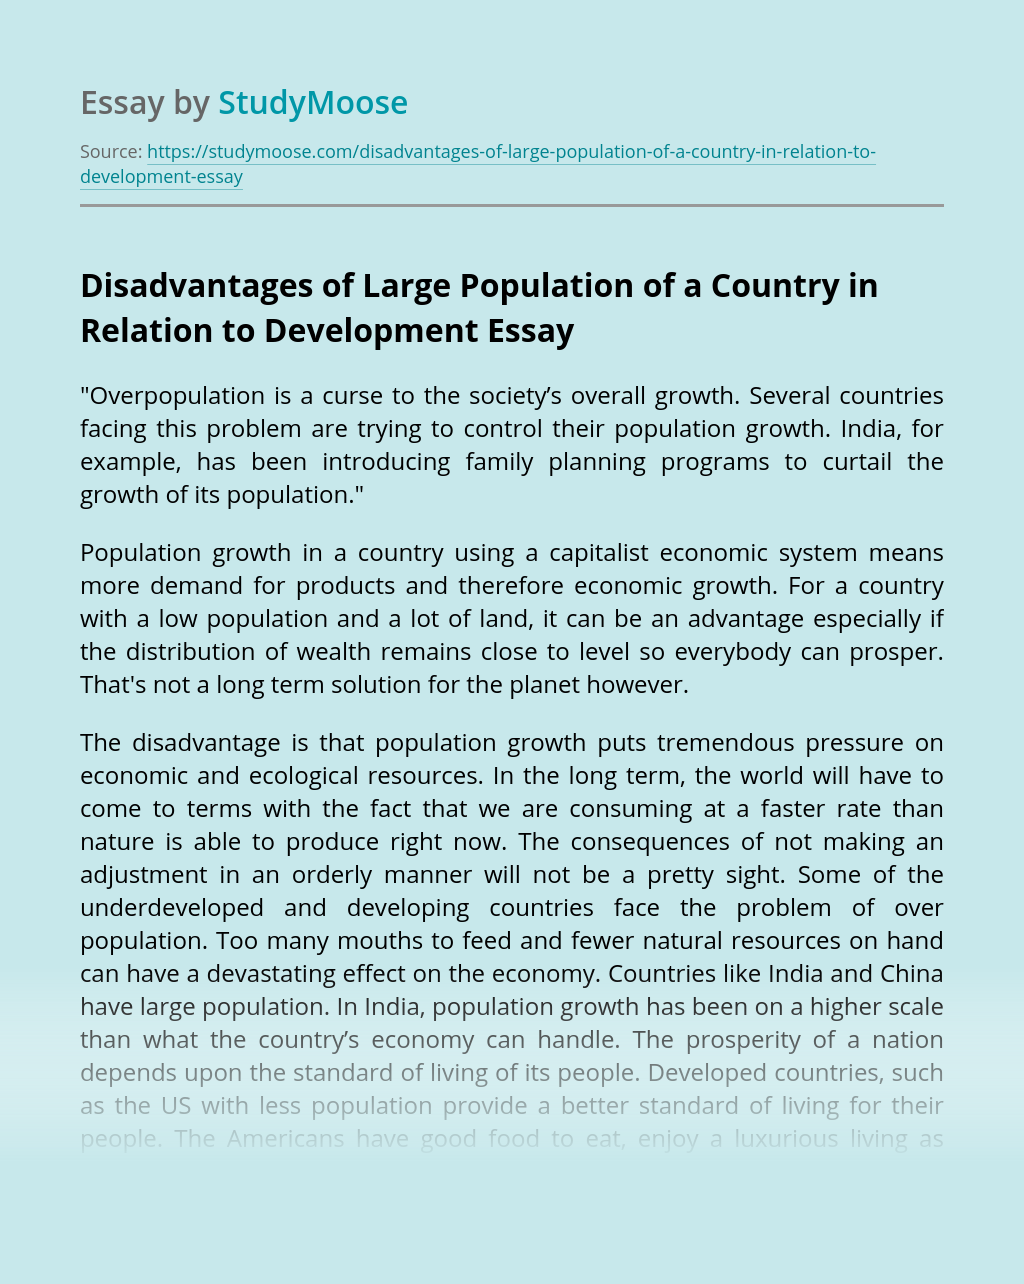 Disadvantages of Large Population of a Country in Relation to Development